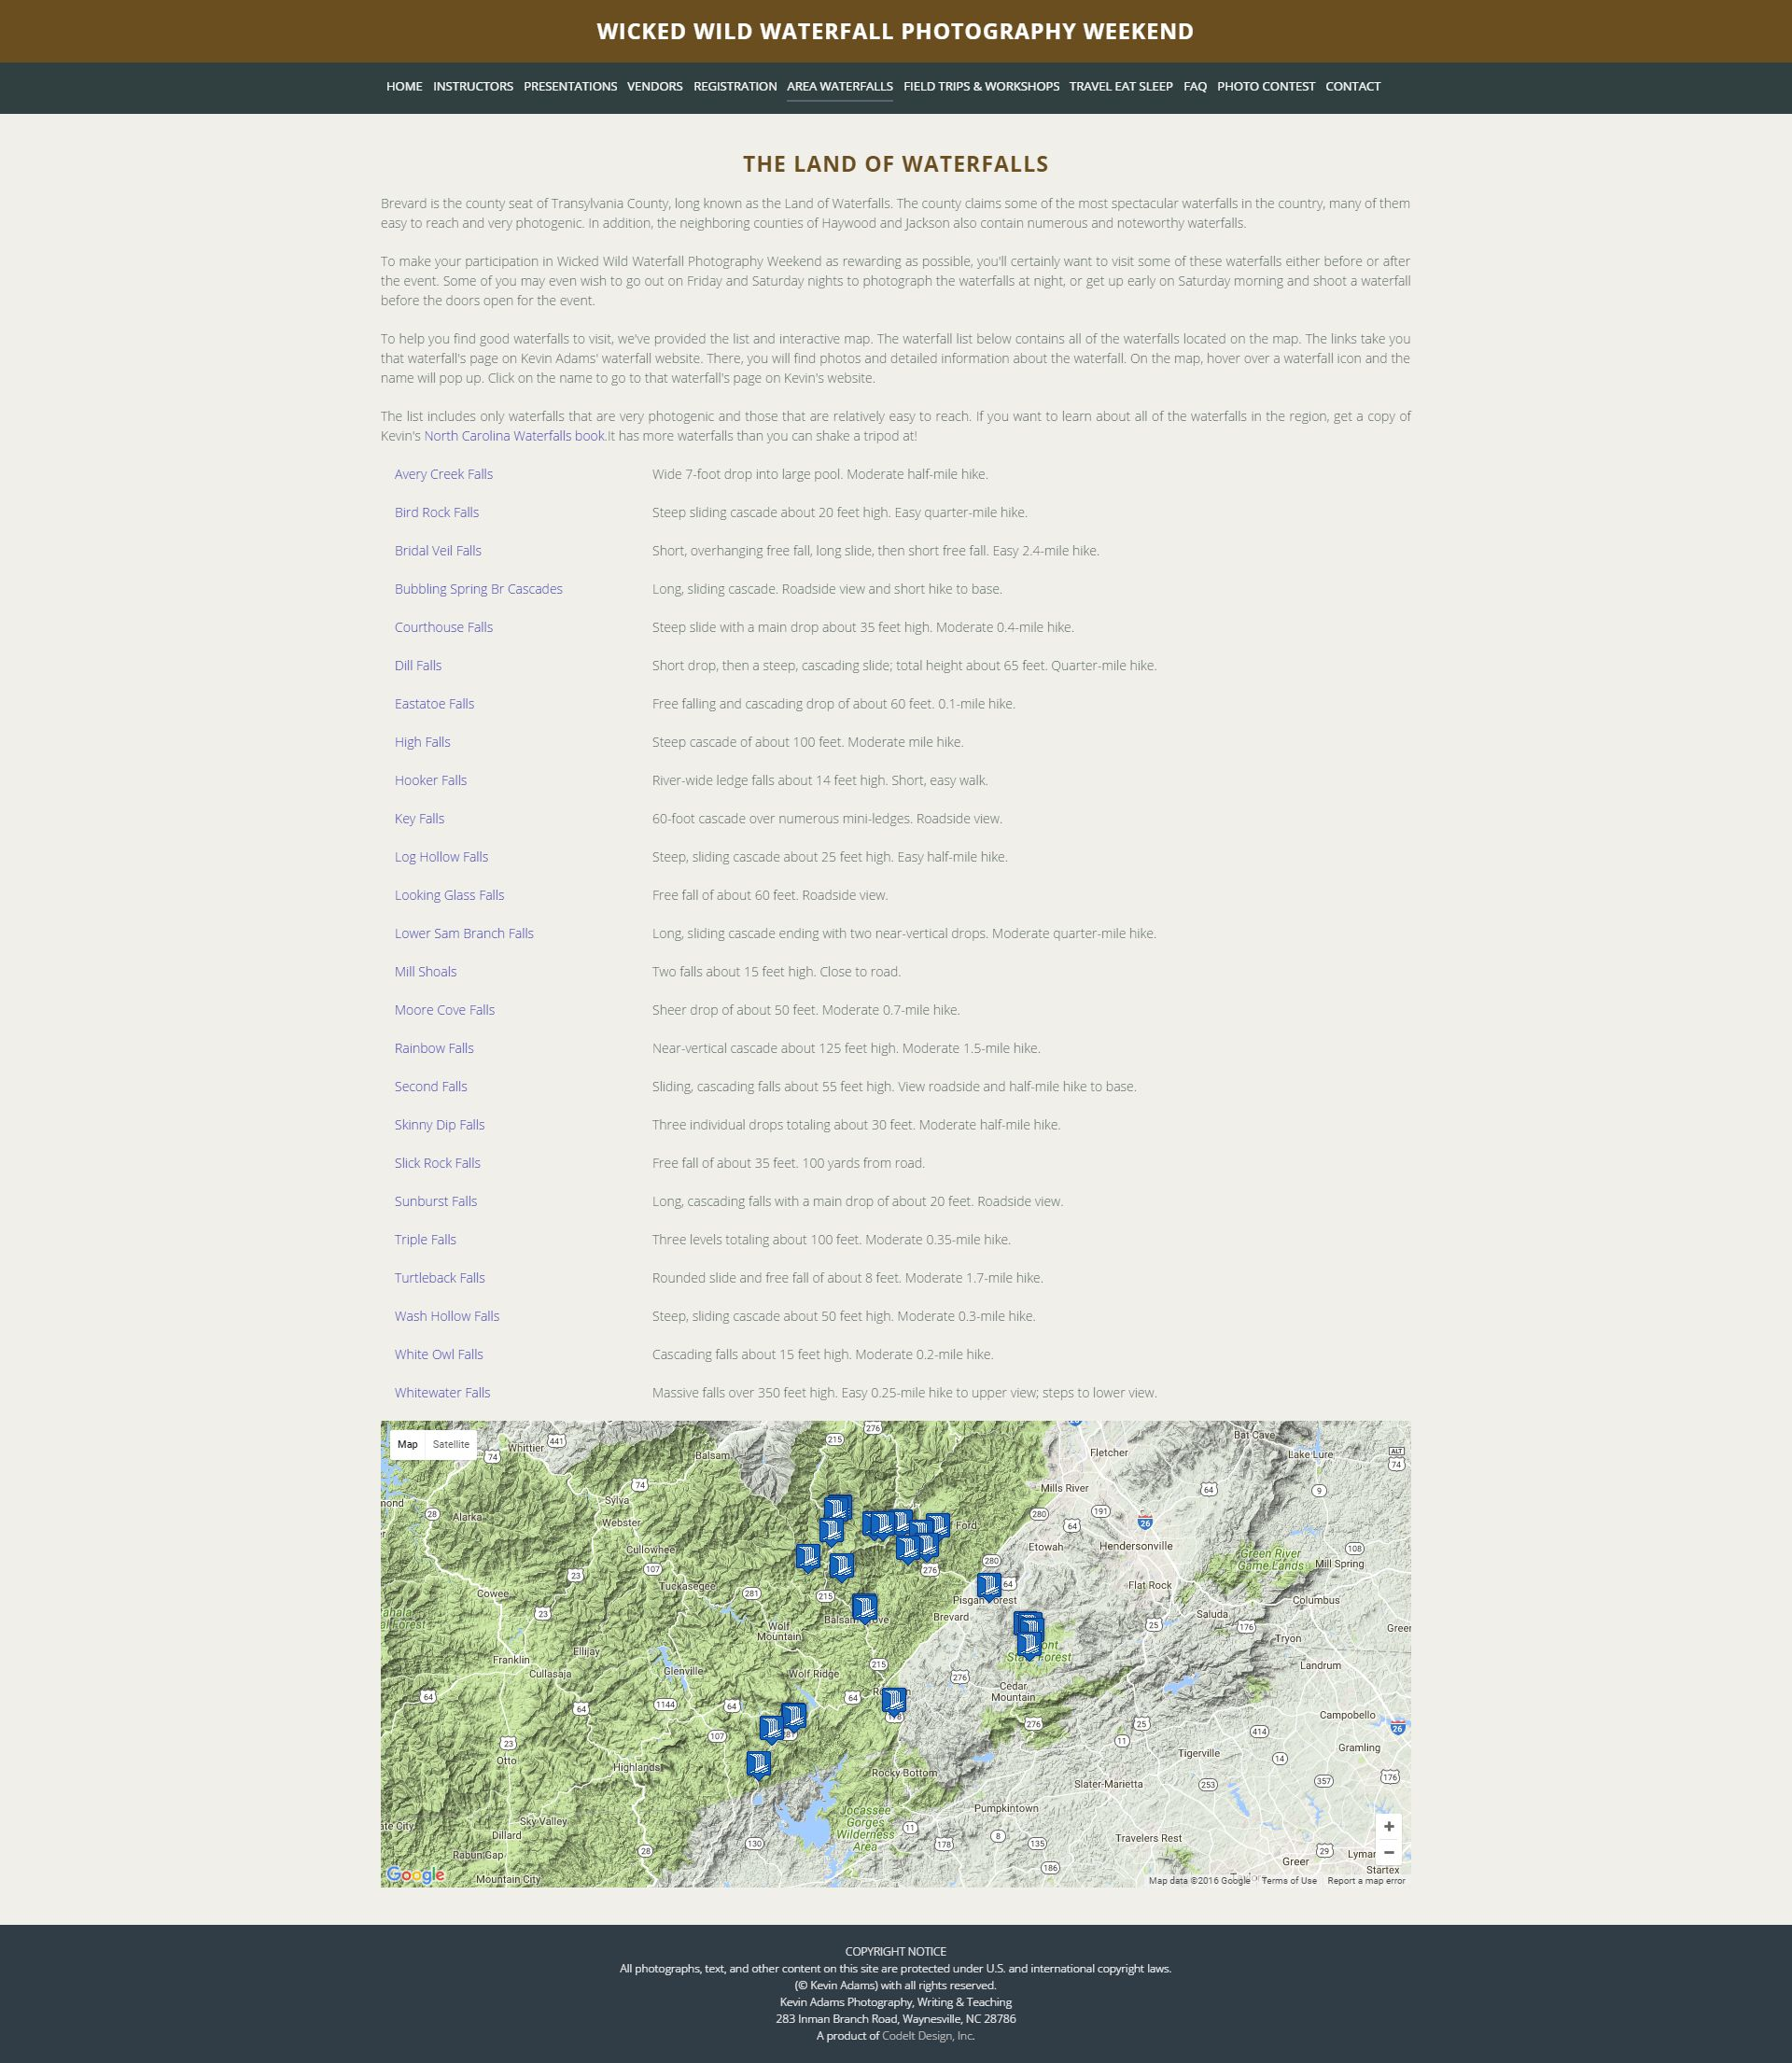 Google Map Page for Waterfall Photography Weekend